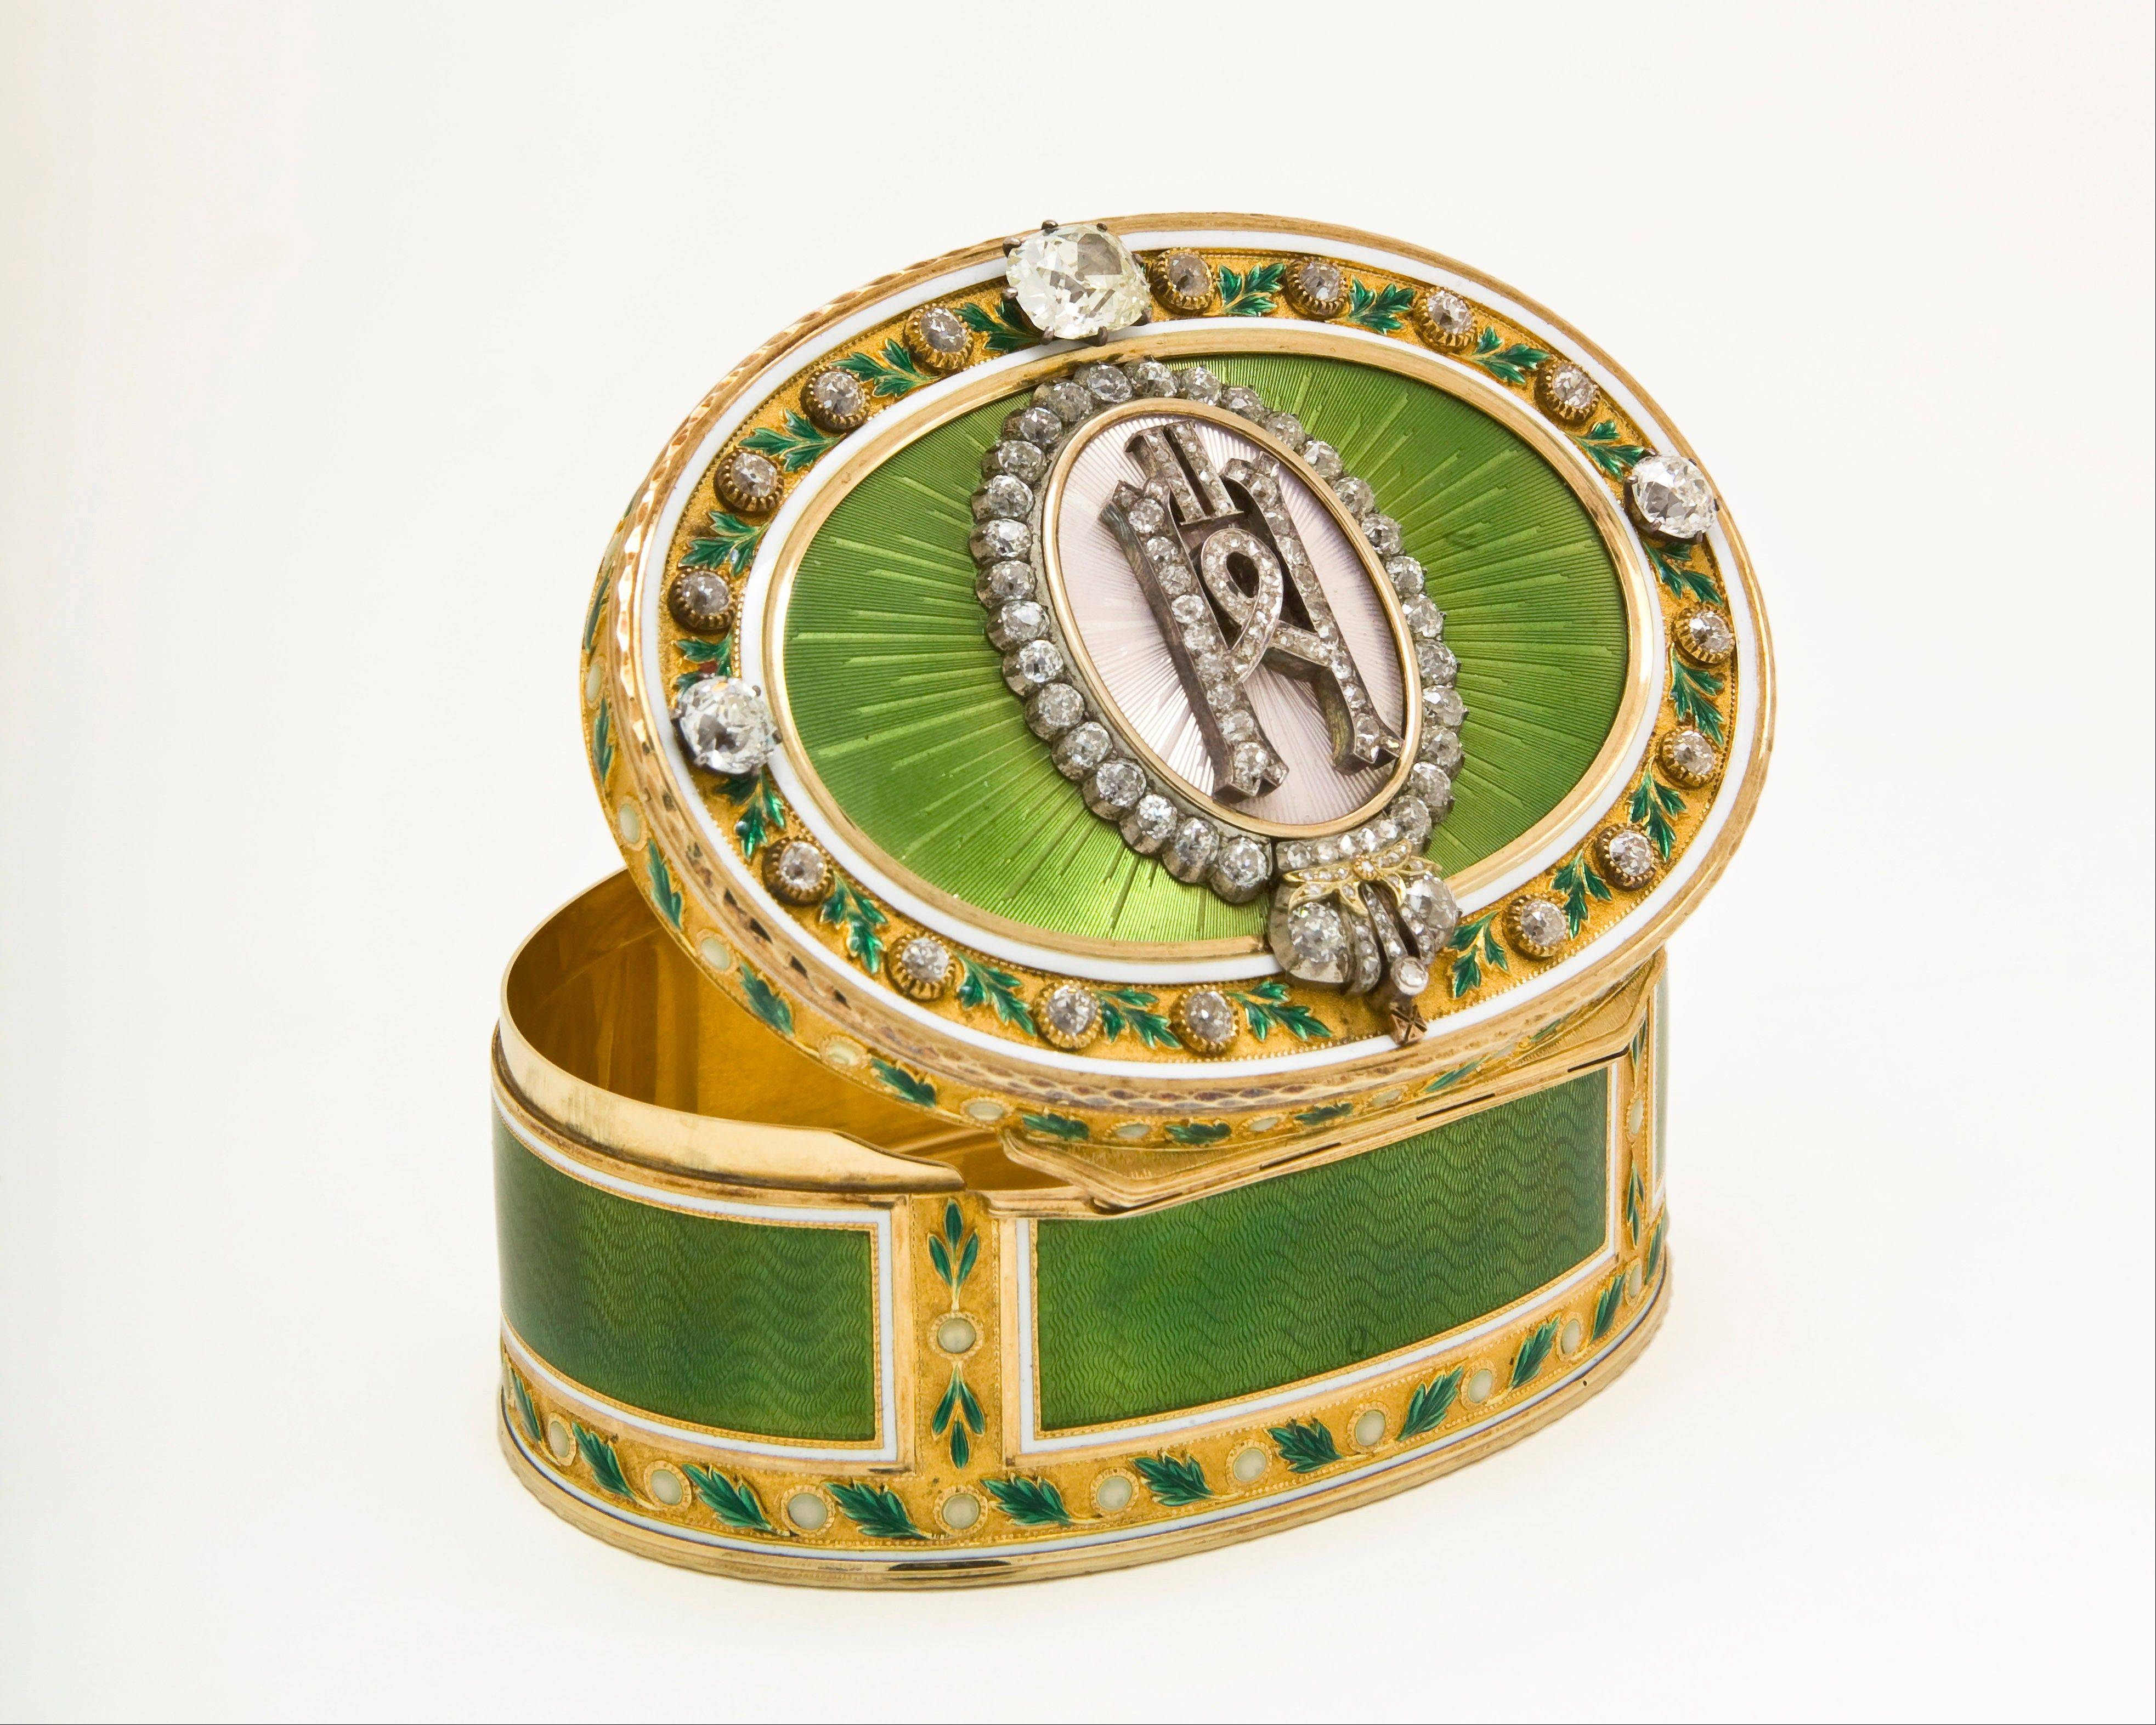 An imperial presentation box by Faberge workmaster Mikhail Perkhin is shown at the Houston Museum of Natural Science.